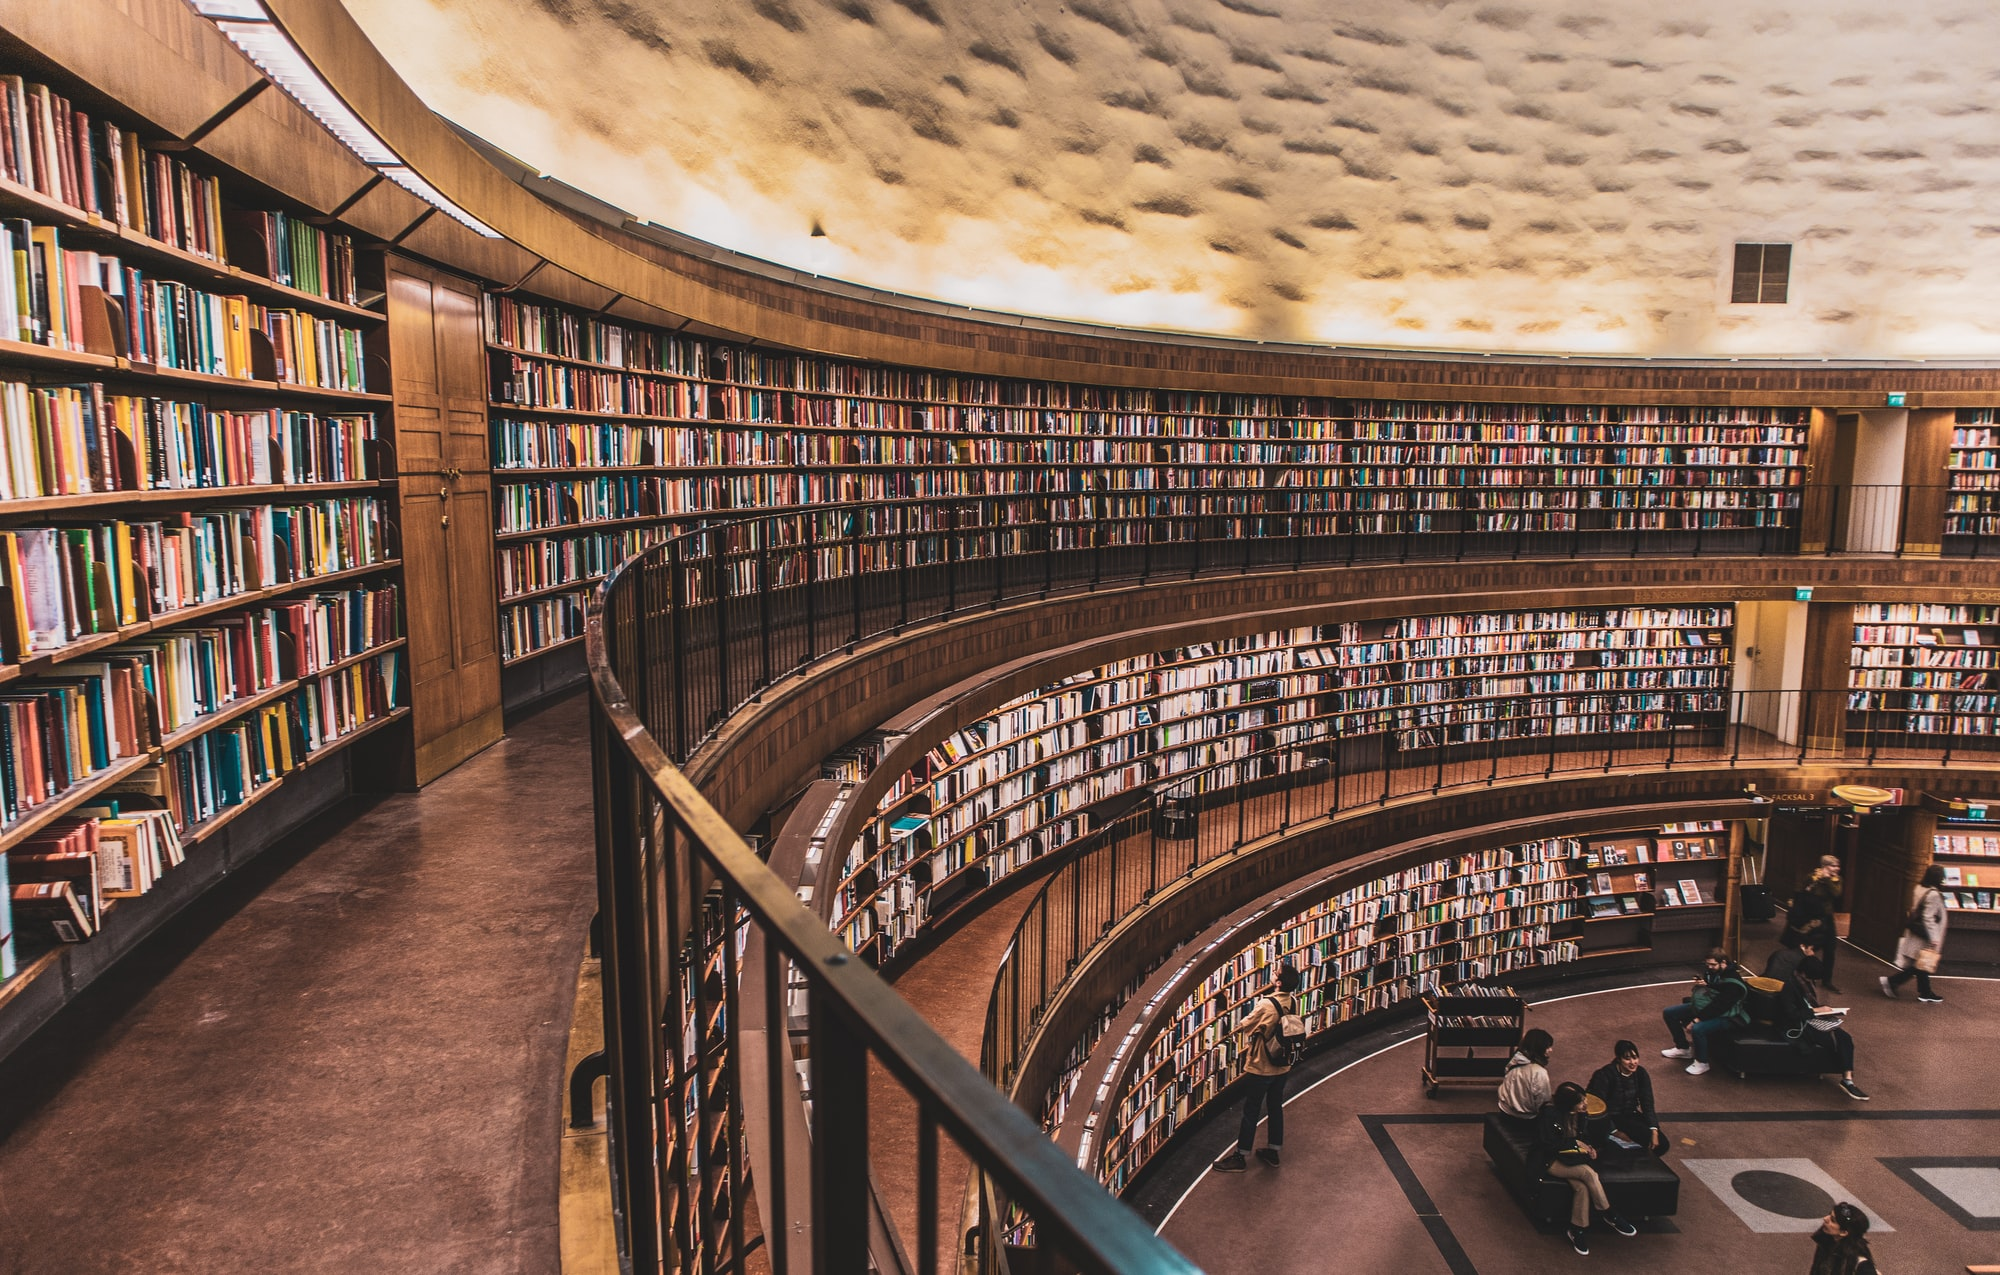 10 Awesome JavaScript Libraries You Should Try Out in 2020